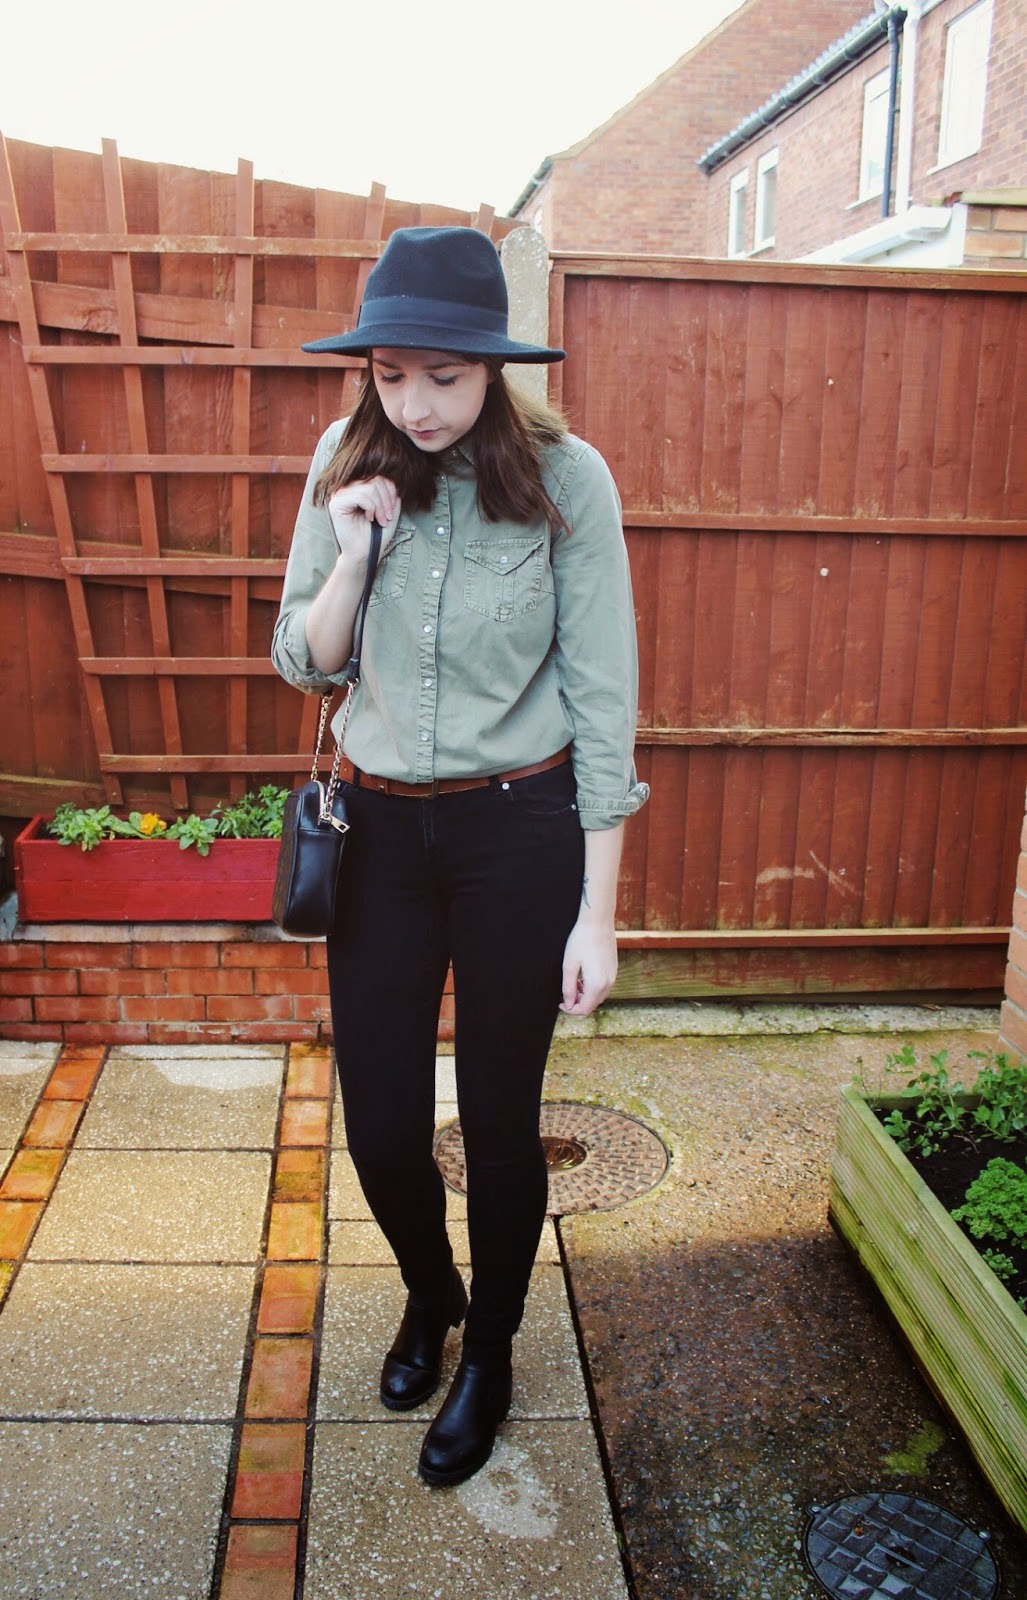 asseenonme, asos, newlook, primark, vintage, wiw, whatimwearing, ootd, outfitoftheday, lotd, lookoftheday, greenshirt, blackjeans, fblogger, fashion, fashionbloggers, fashionblogger